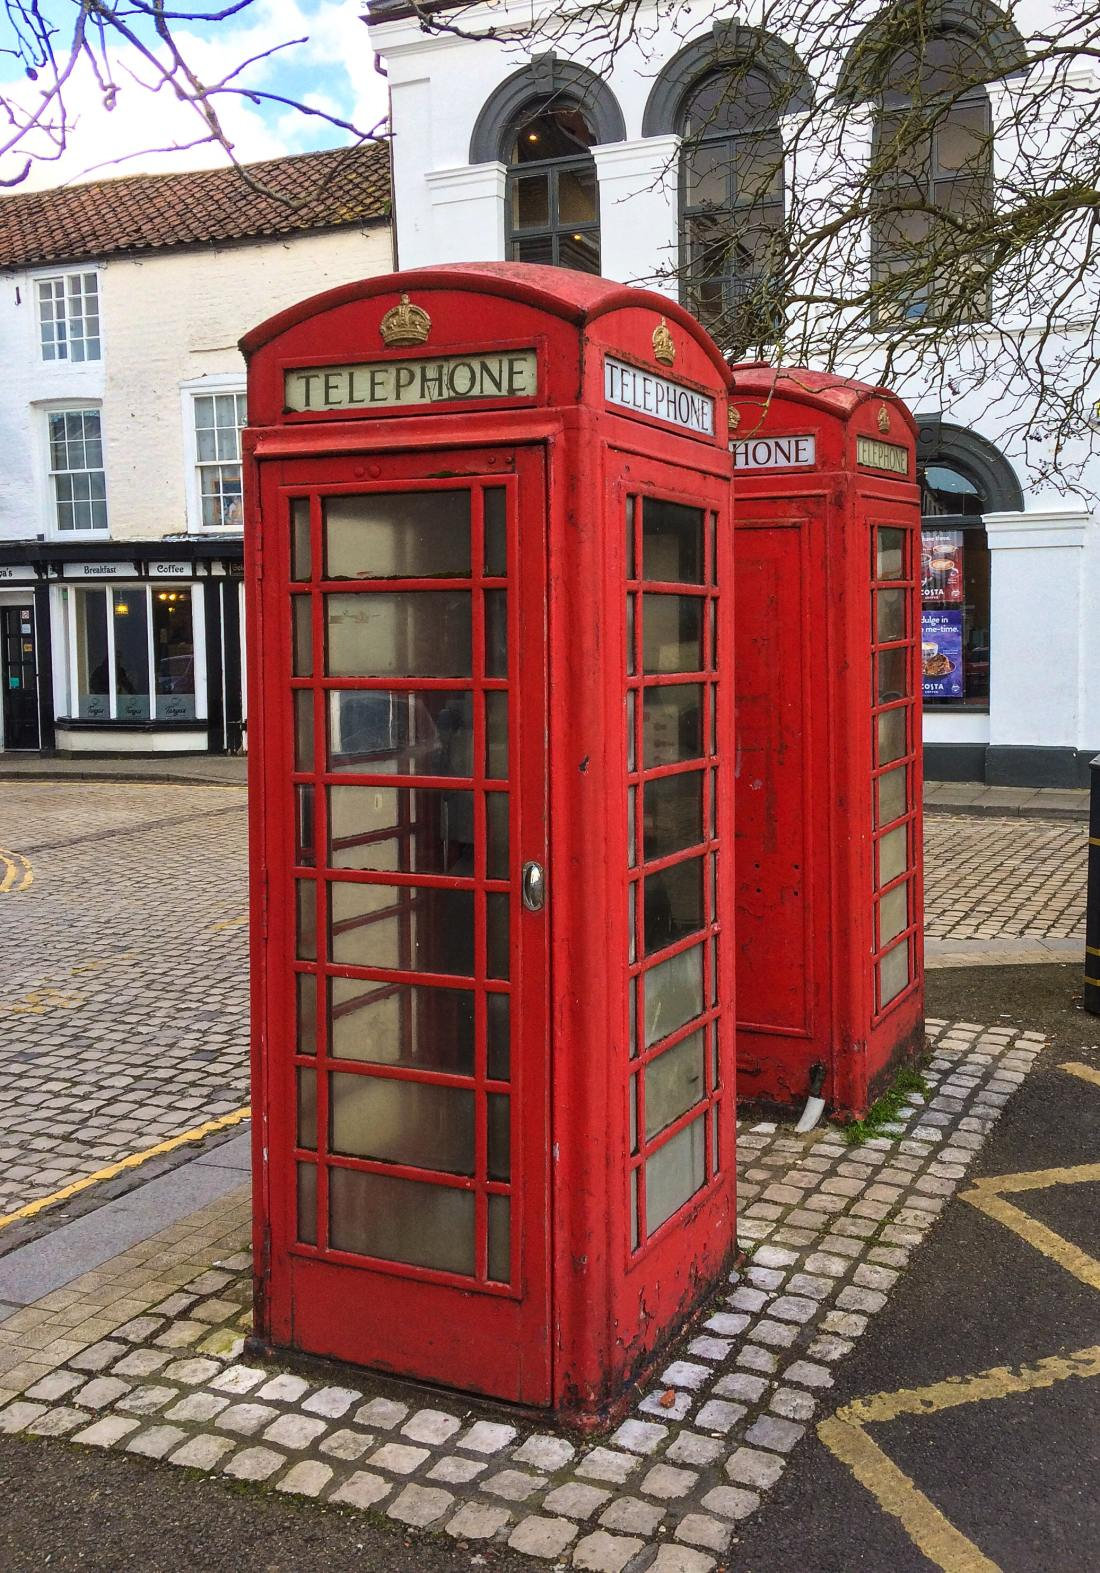 kiosk-telephone-telephone-booth-color-red-3891920